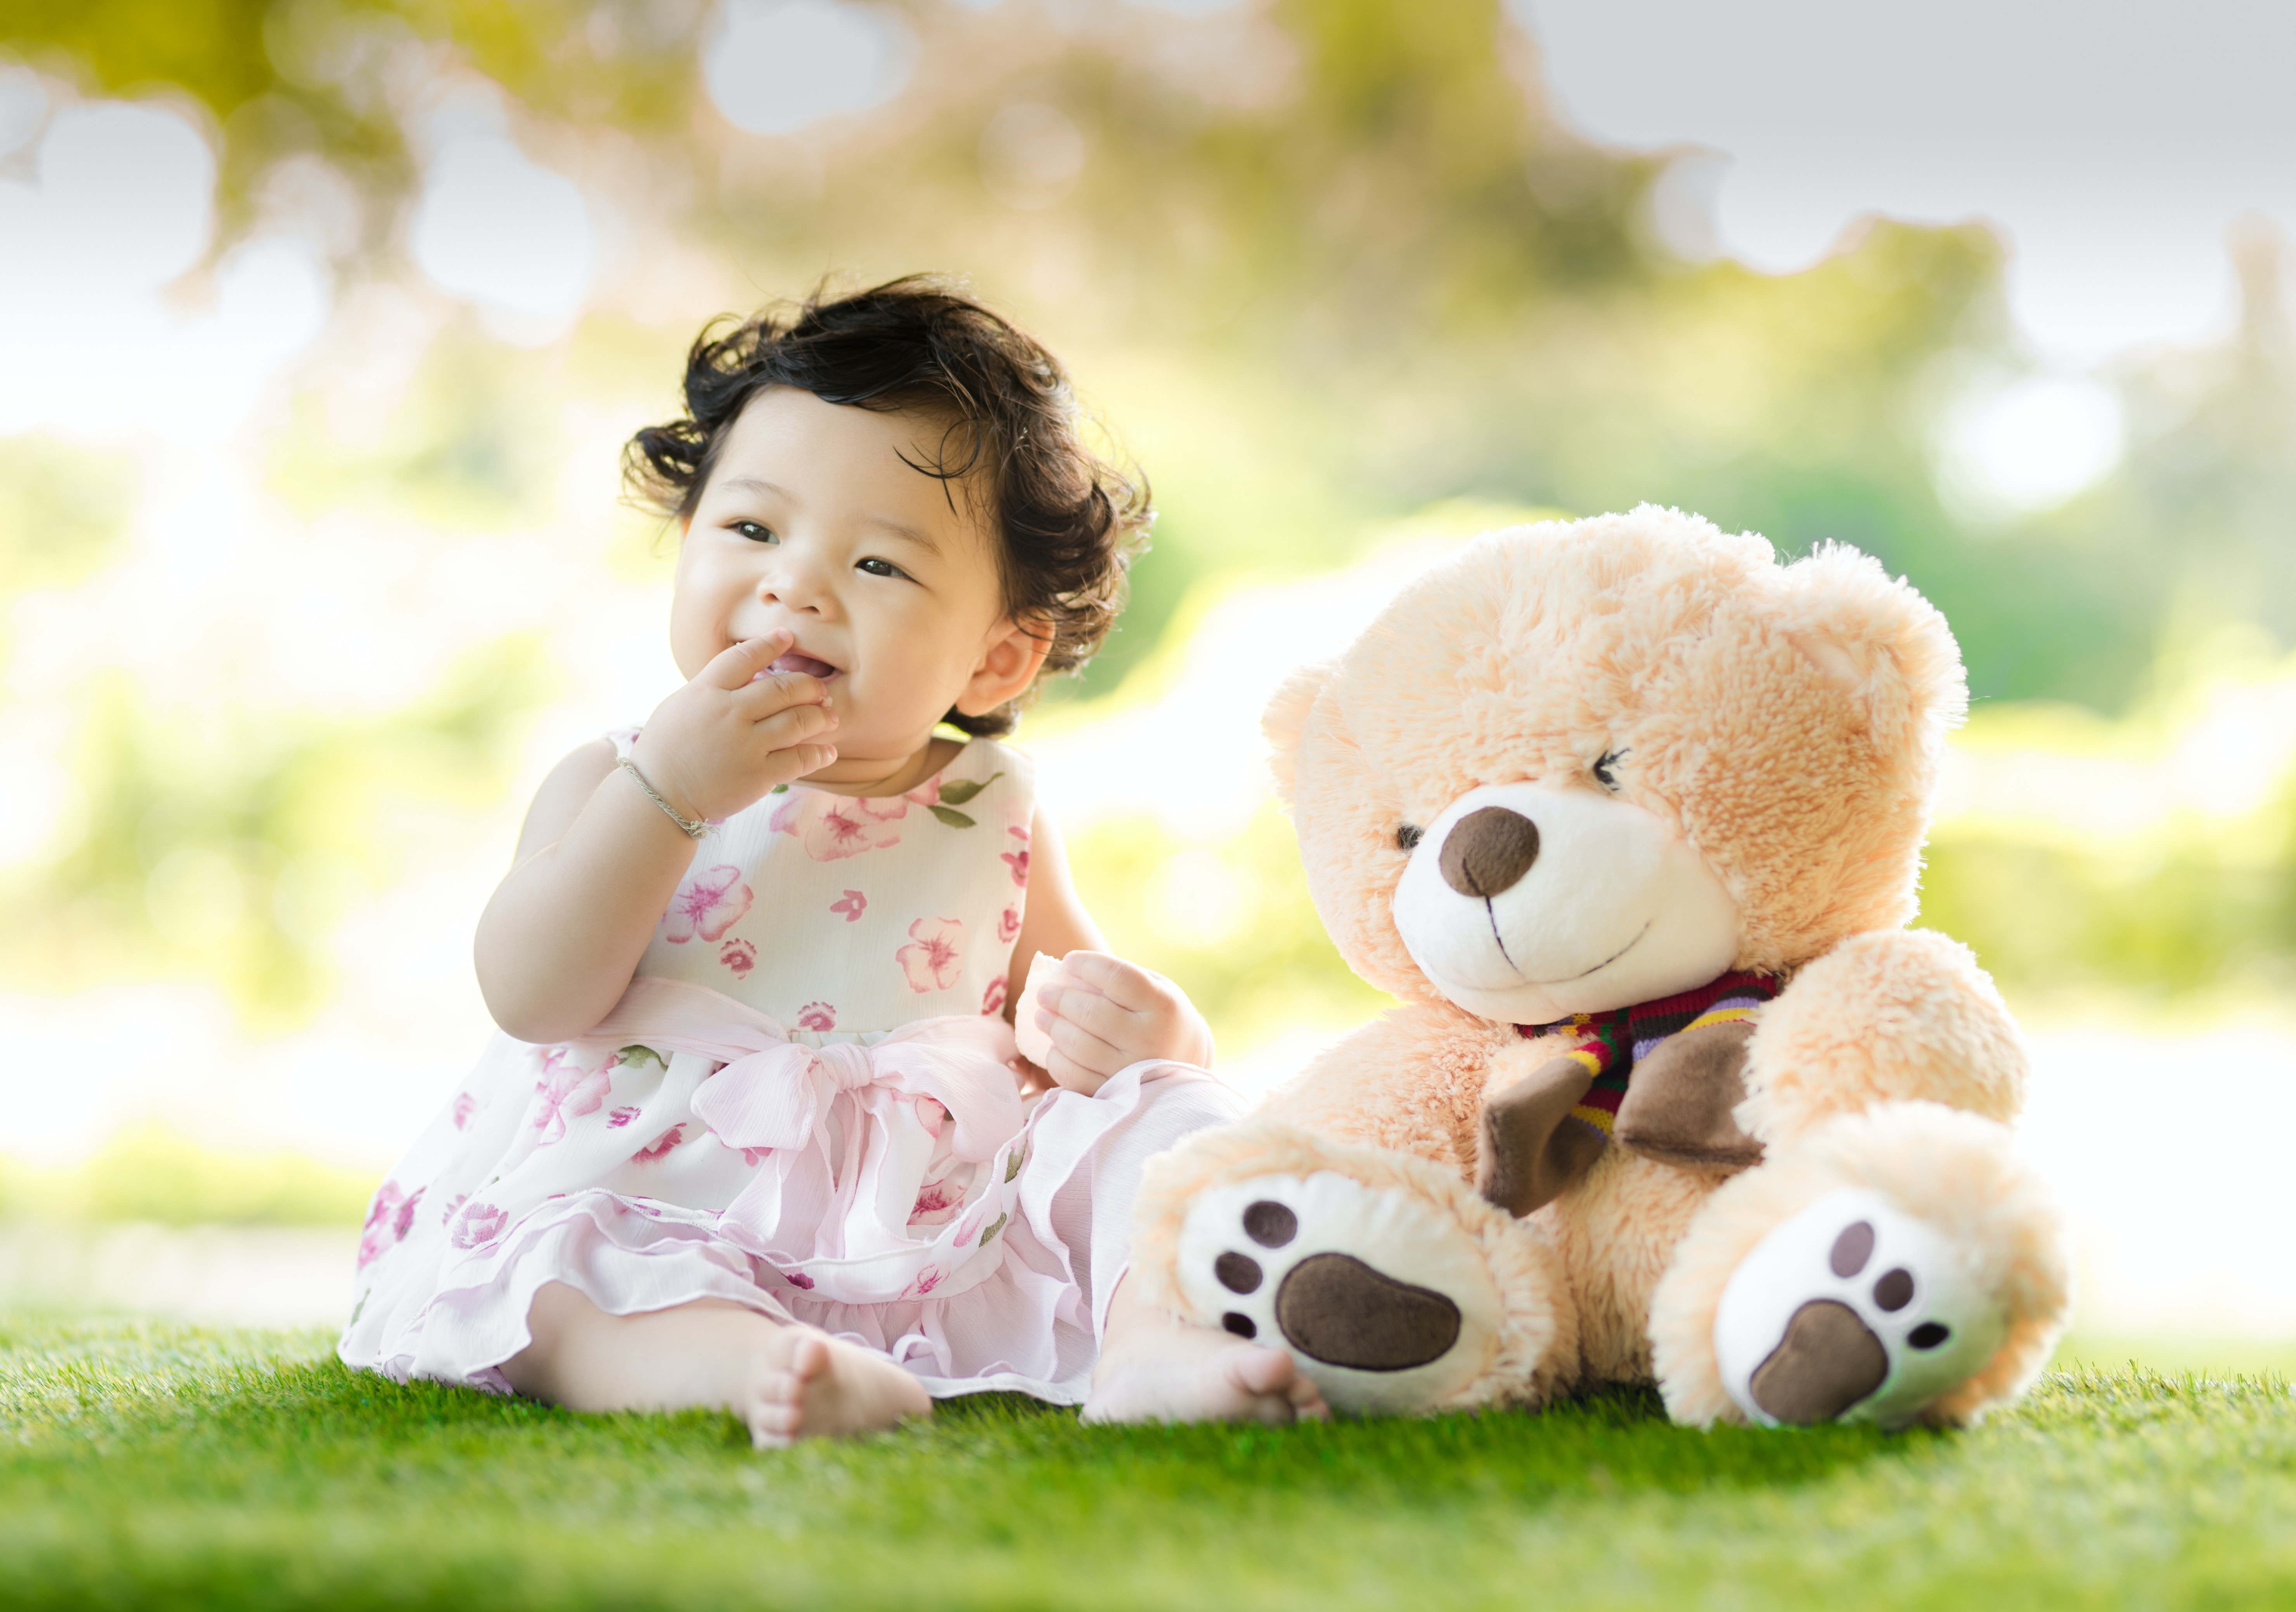 Baby sitting on green grass beside bear plush toy at daytime · free stock photo